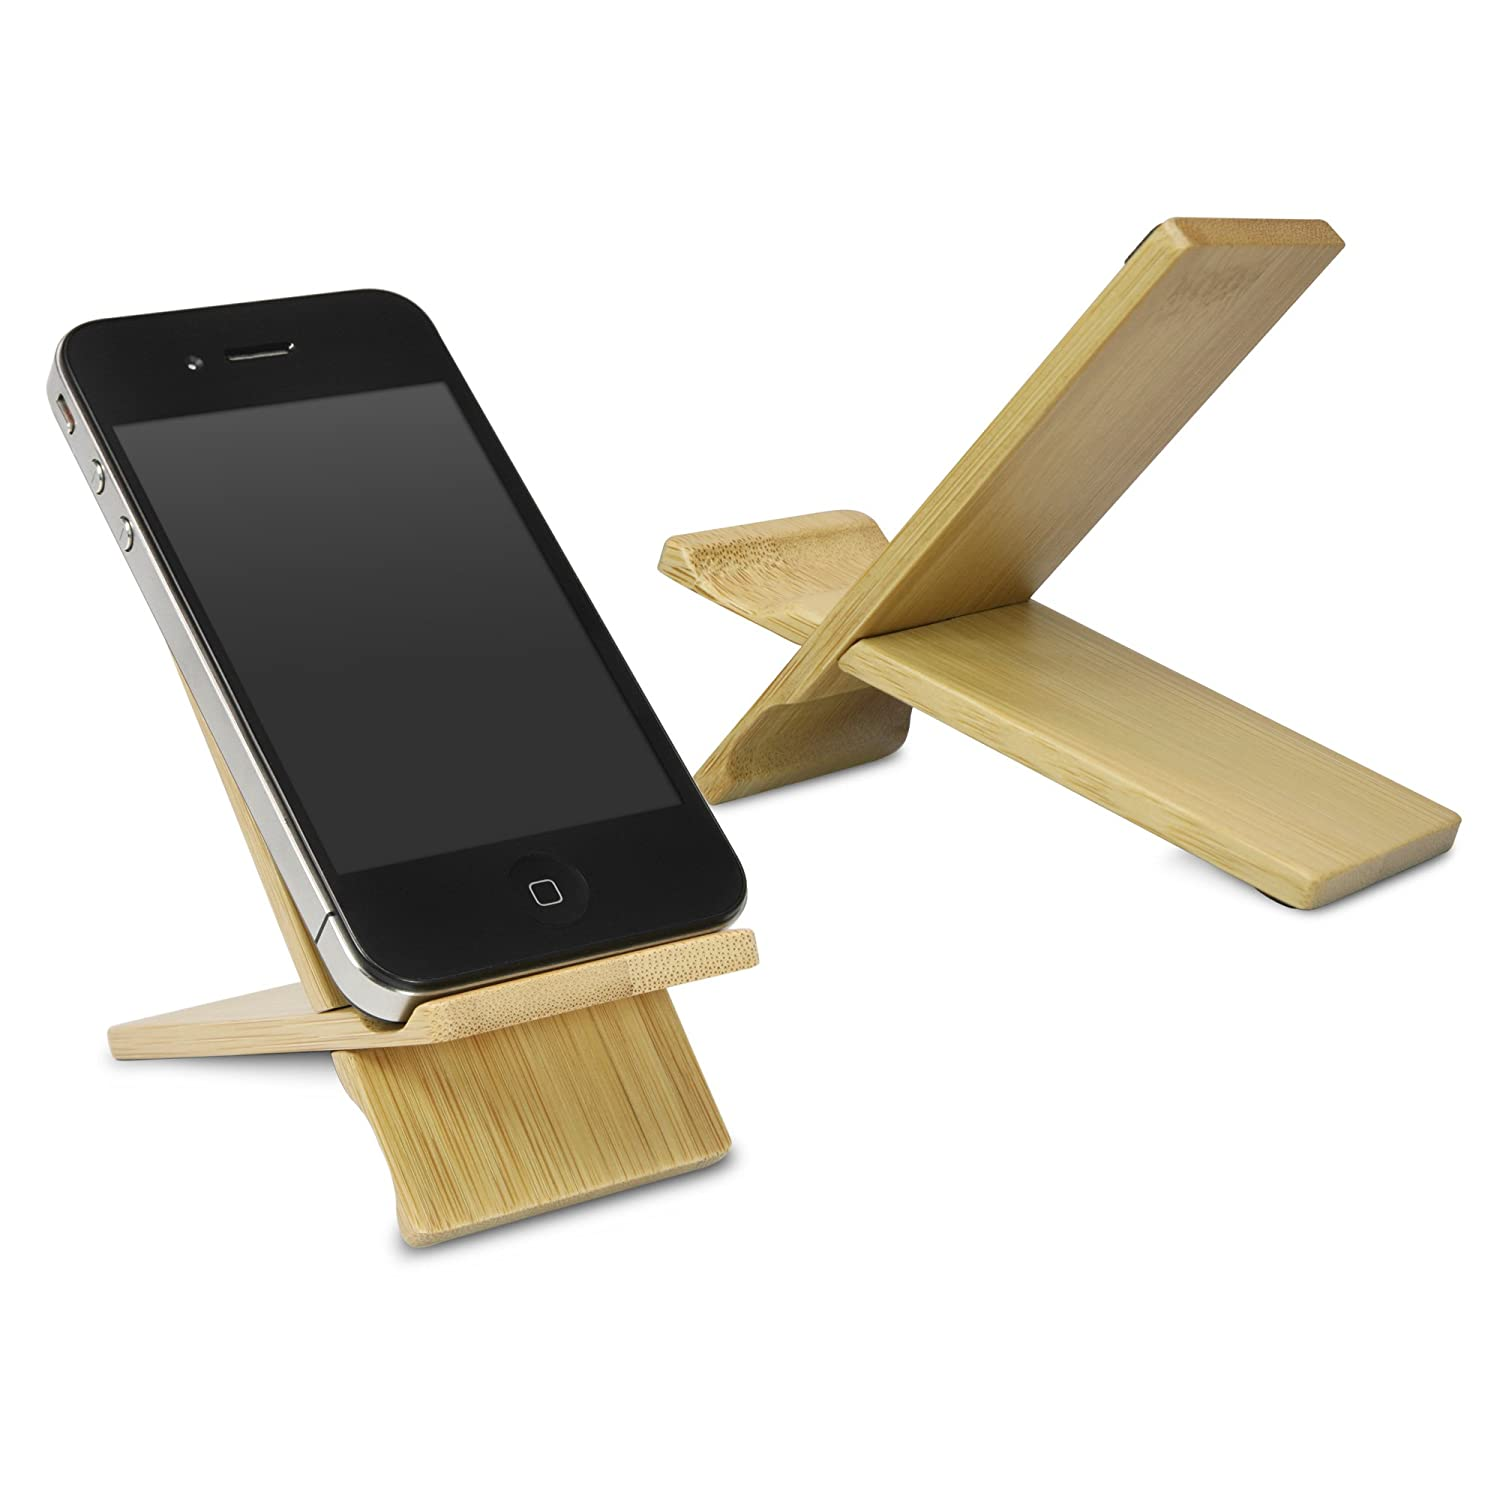 BoxWave HTC Titan II Bamboo Natural Panel Stand, Premium Bamboo, Real Wood Stand for your HTC Titan II - Small гарнитура проводная samsung eo eg920l 3 5мм черный